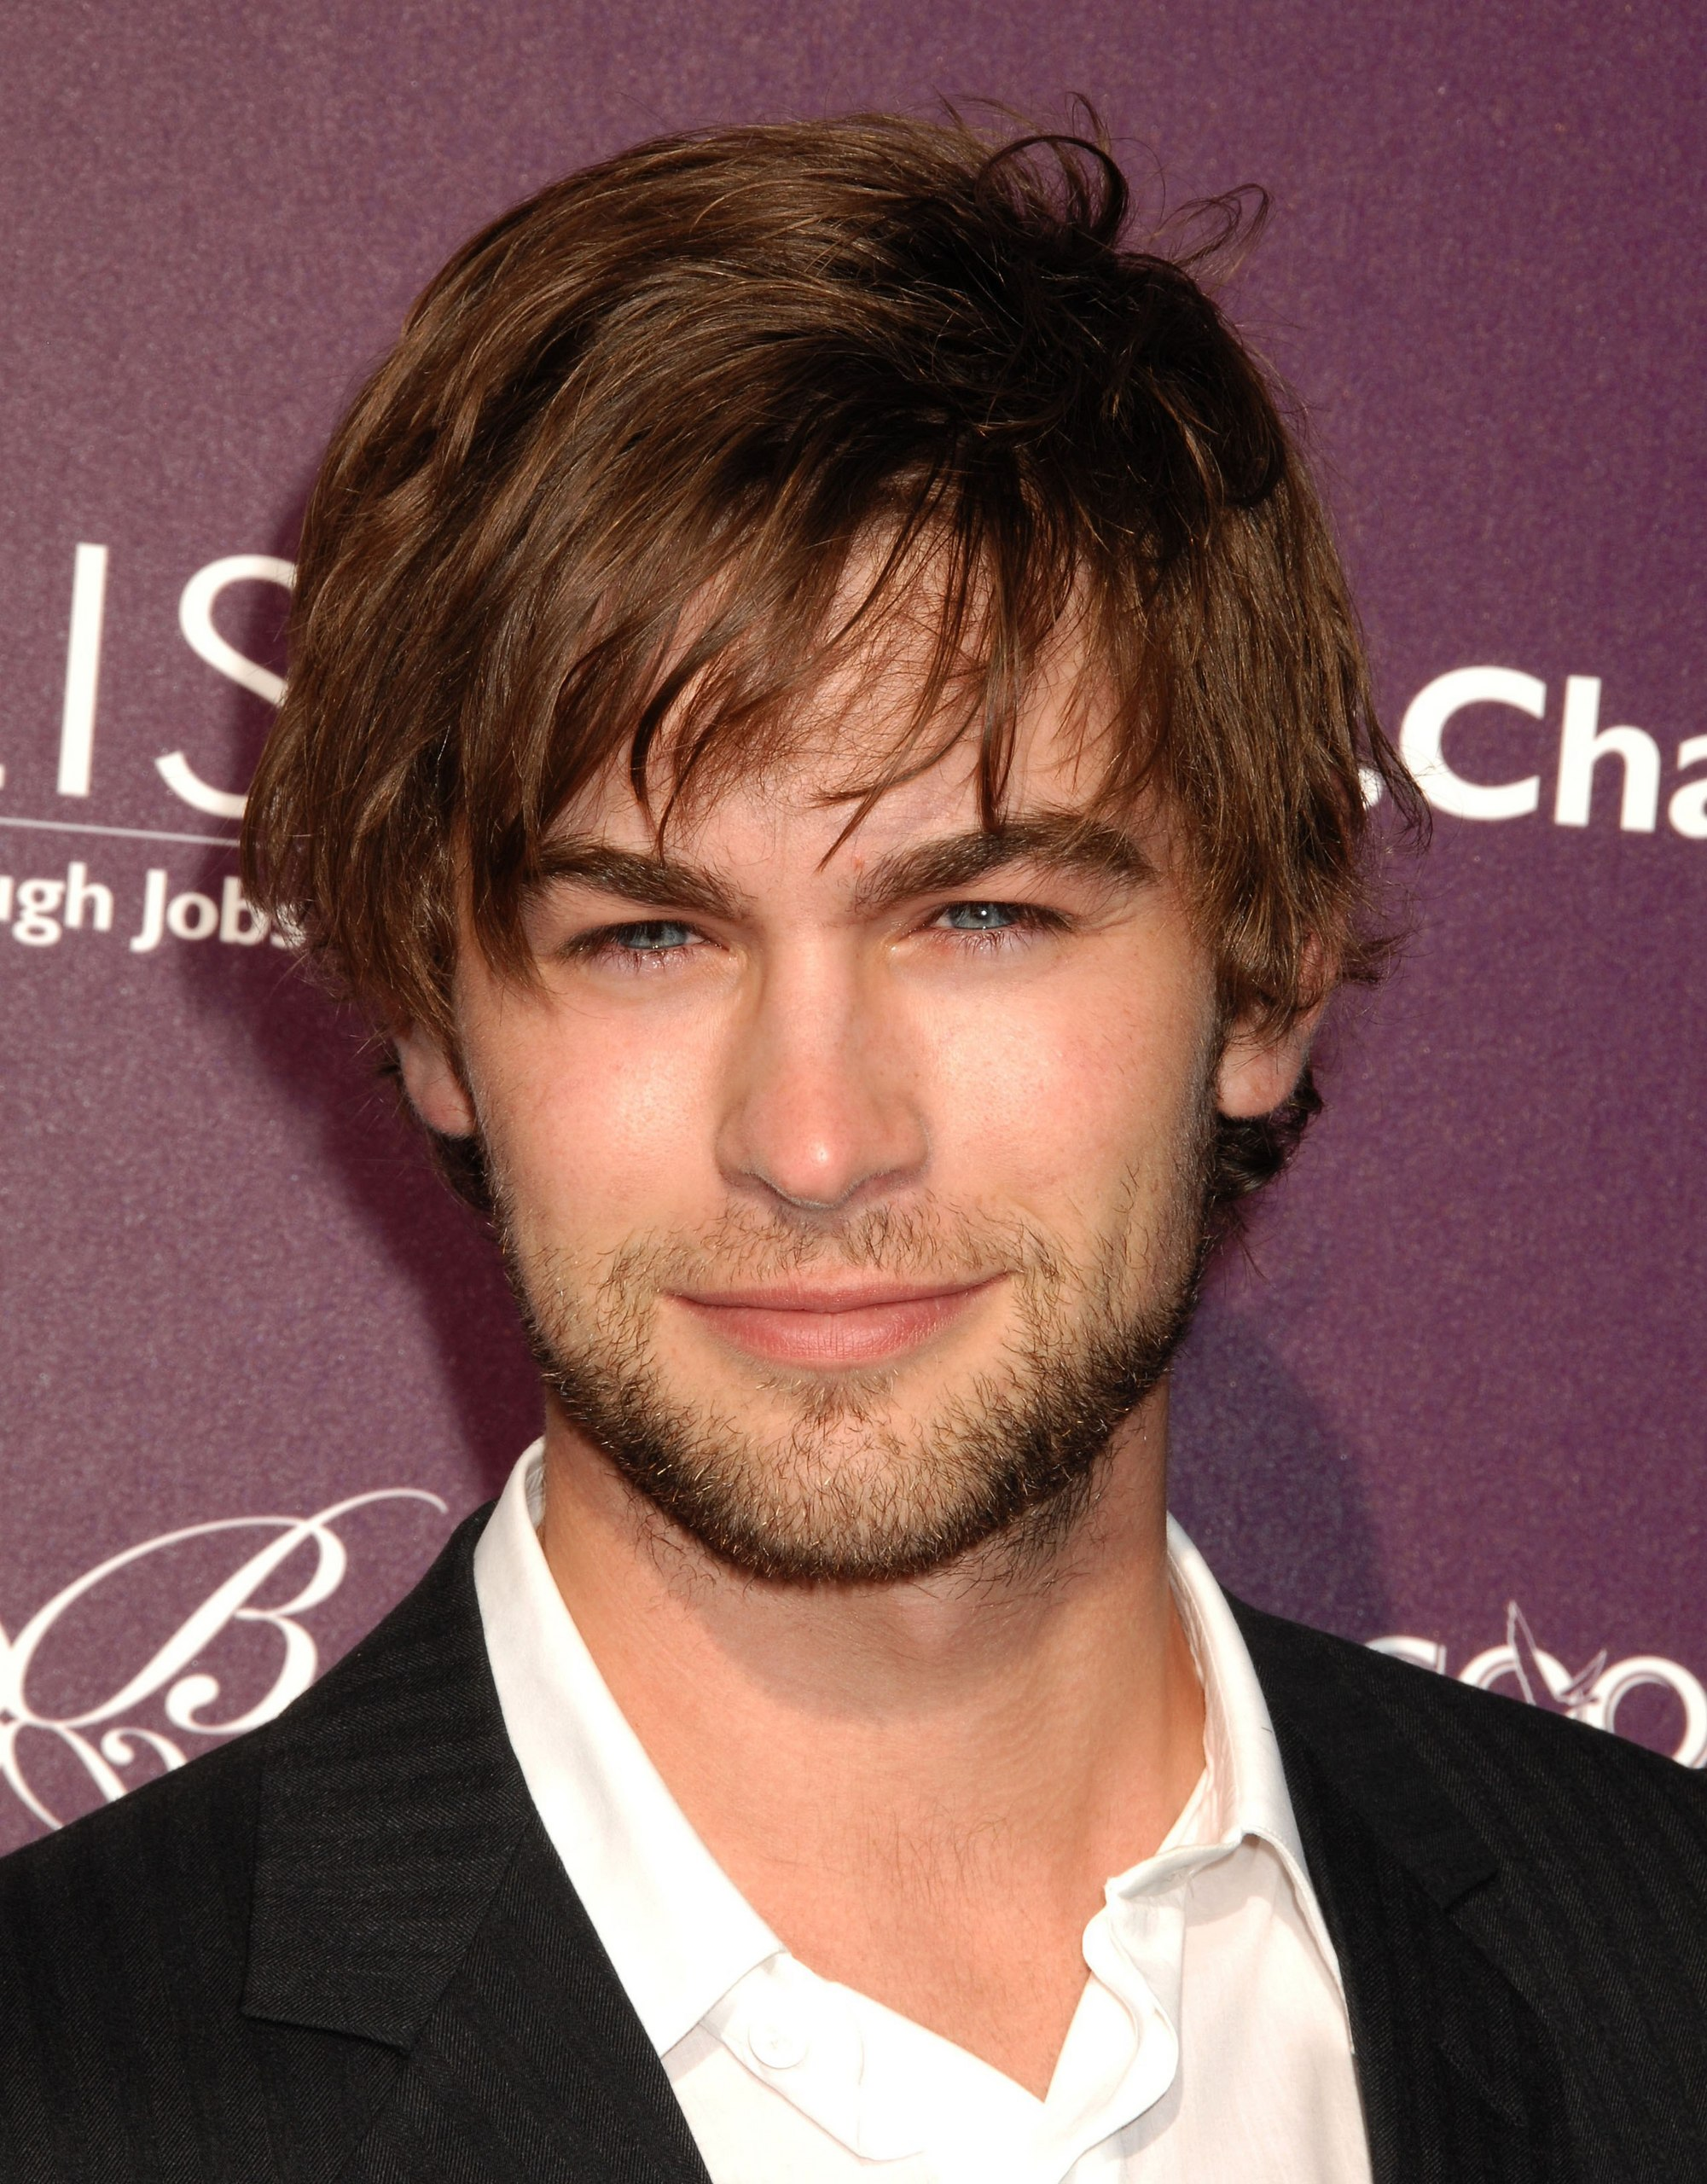 Cartoon pictures of chace crawford - Cartoon Pictures Of Chace Crawford 59